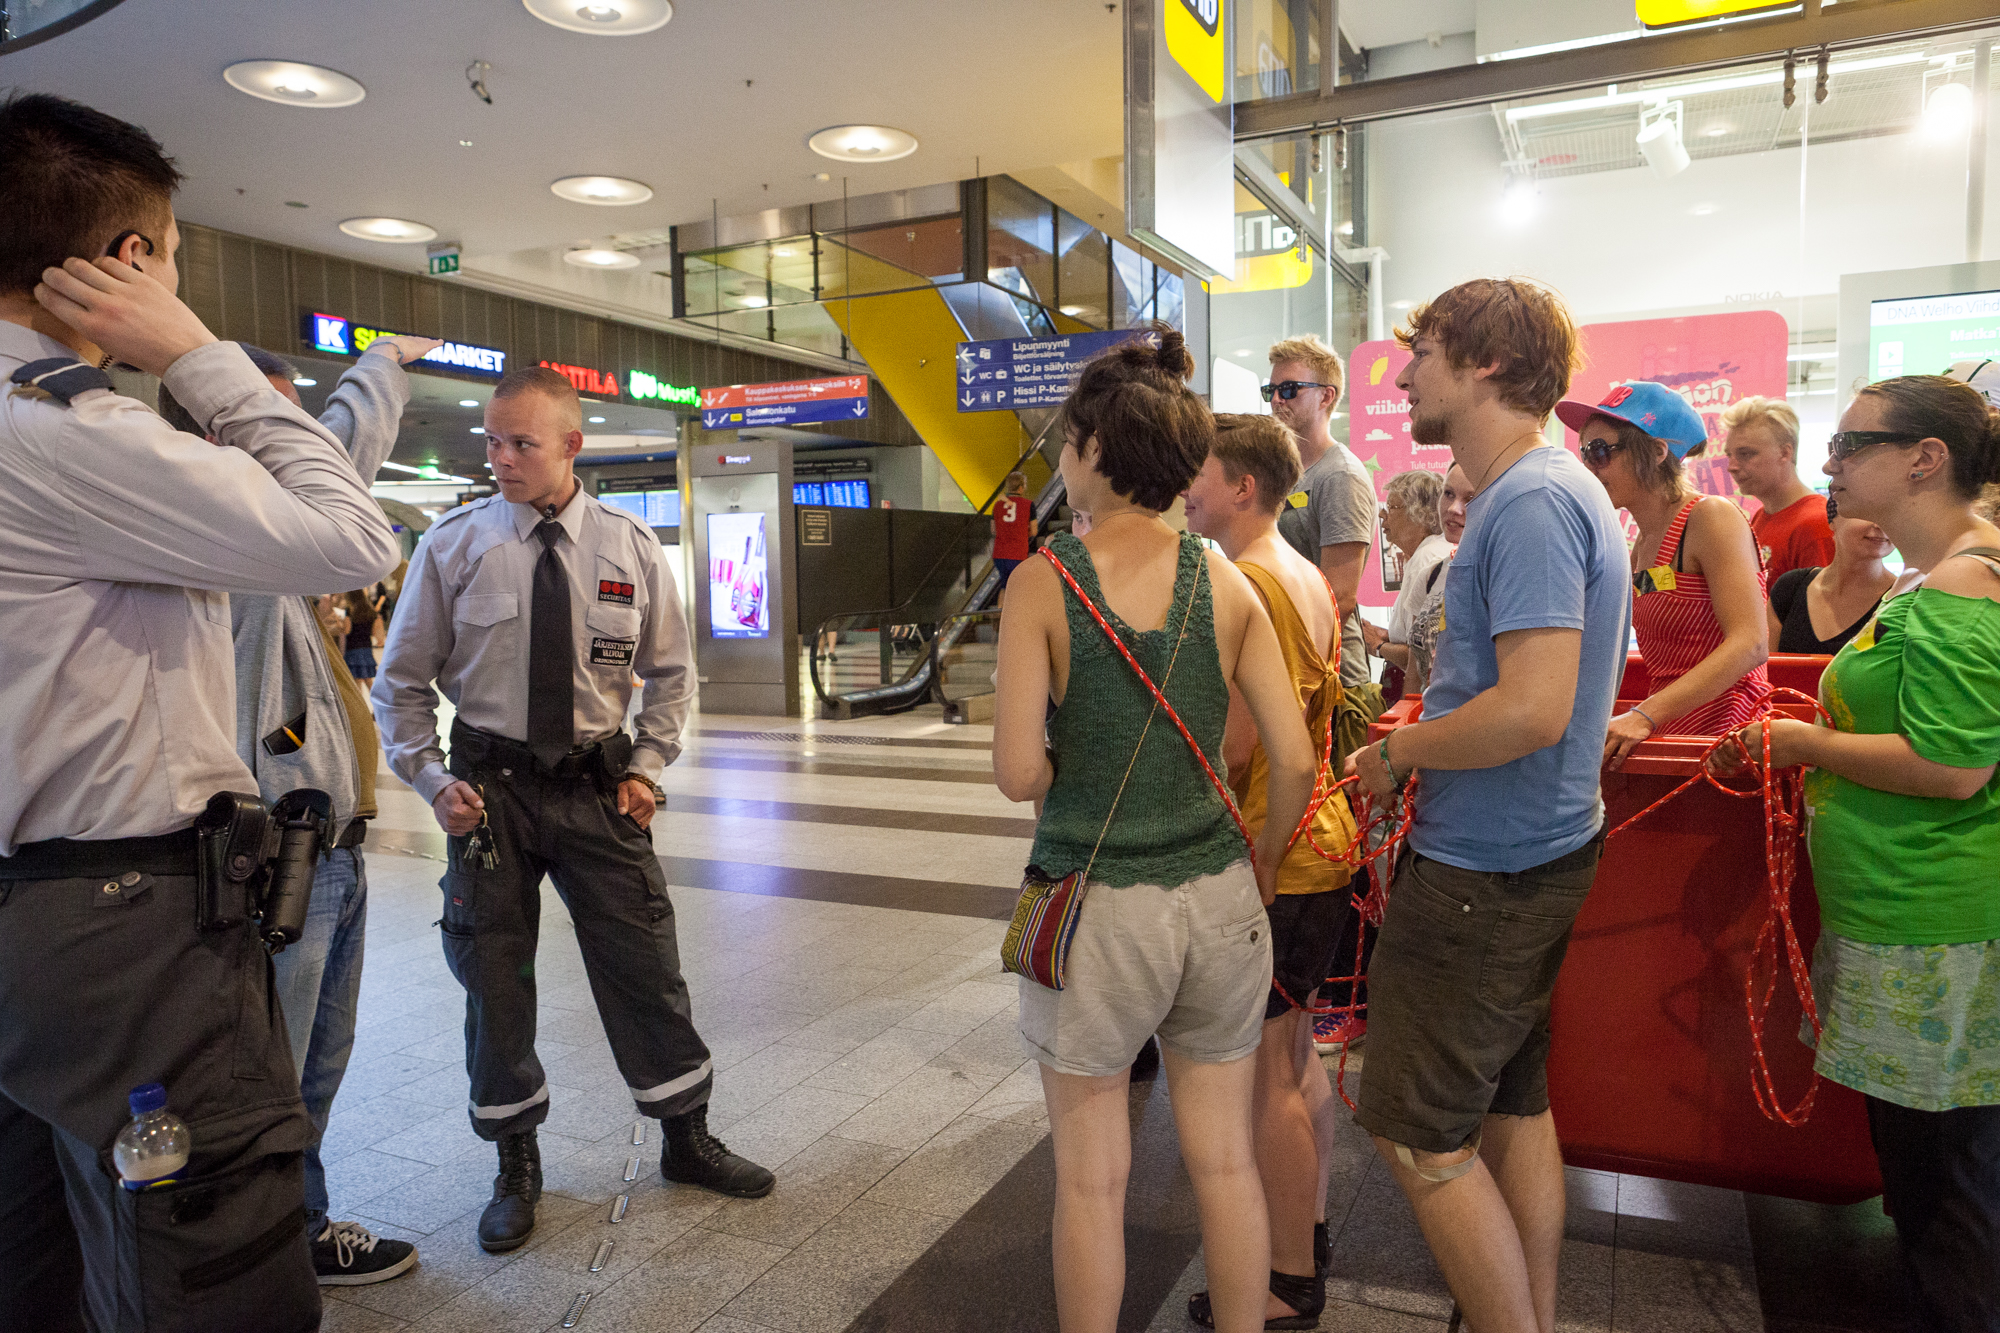 Entering the second station caused some questions in local officers. Picture: Veera Konsti